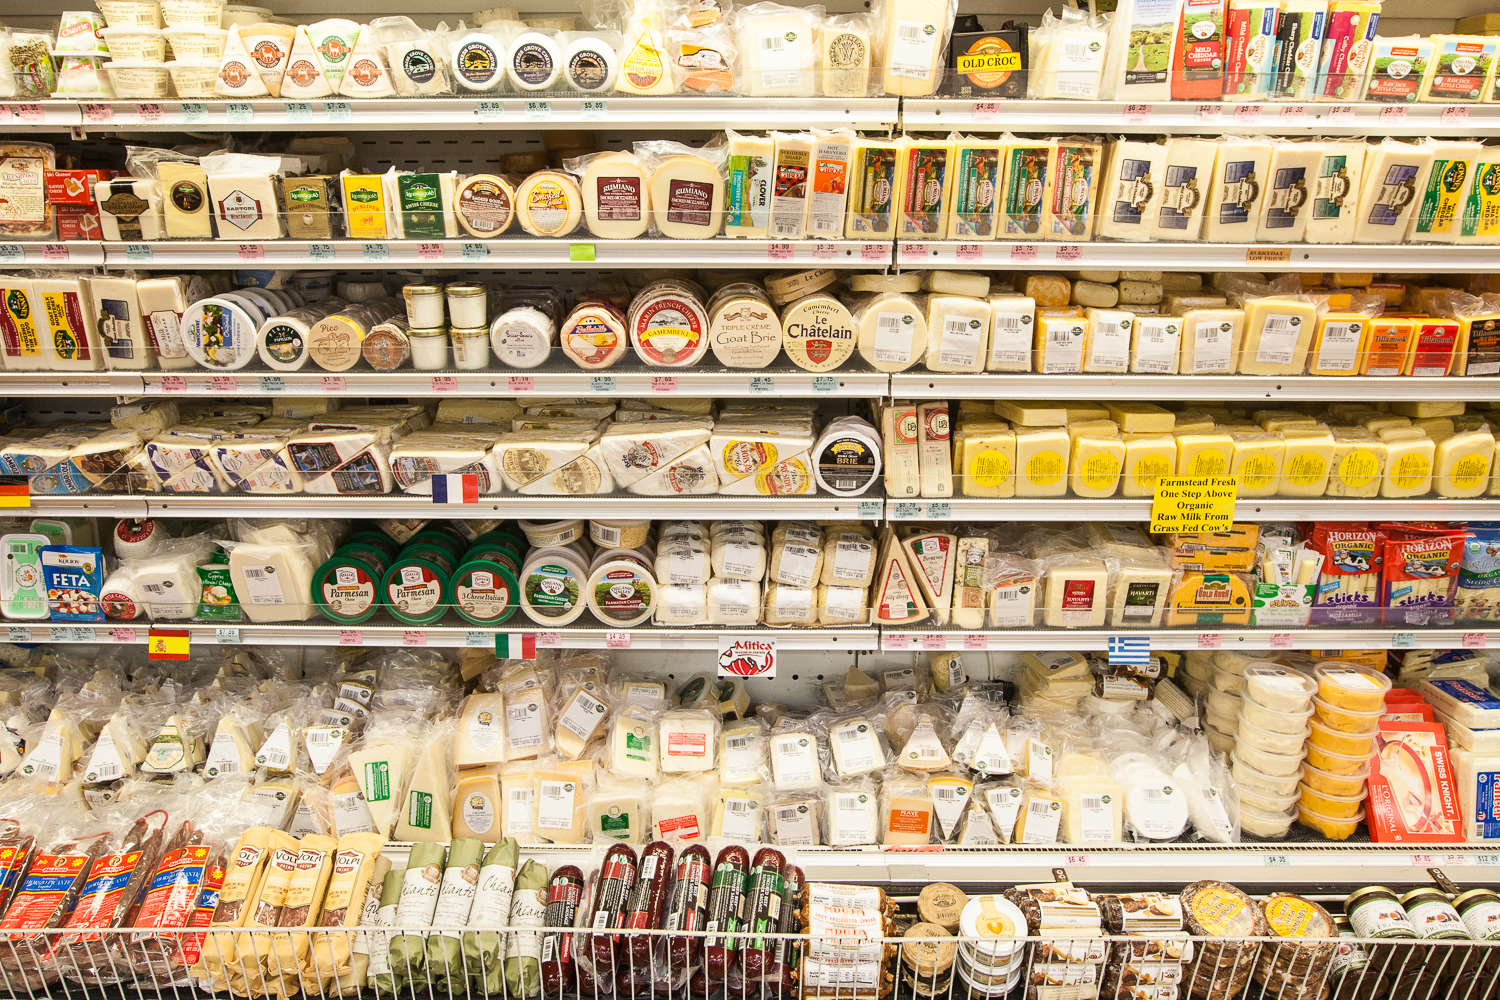 mana-foods-cheese-department-display-2.jpg